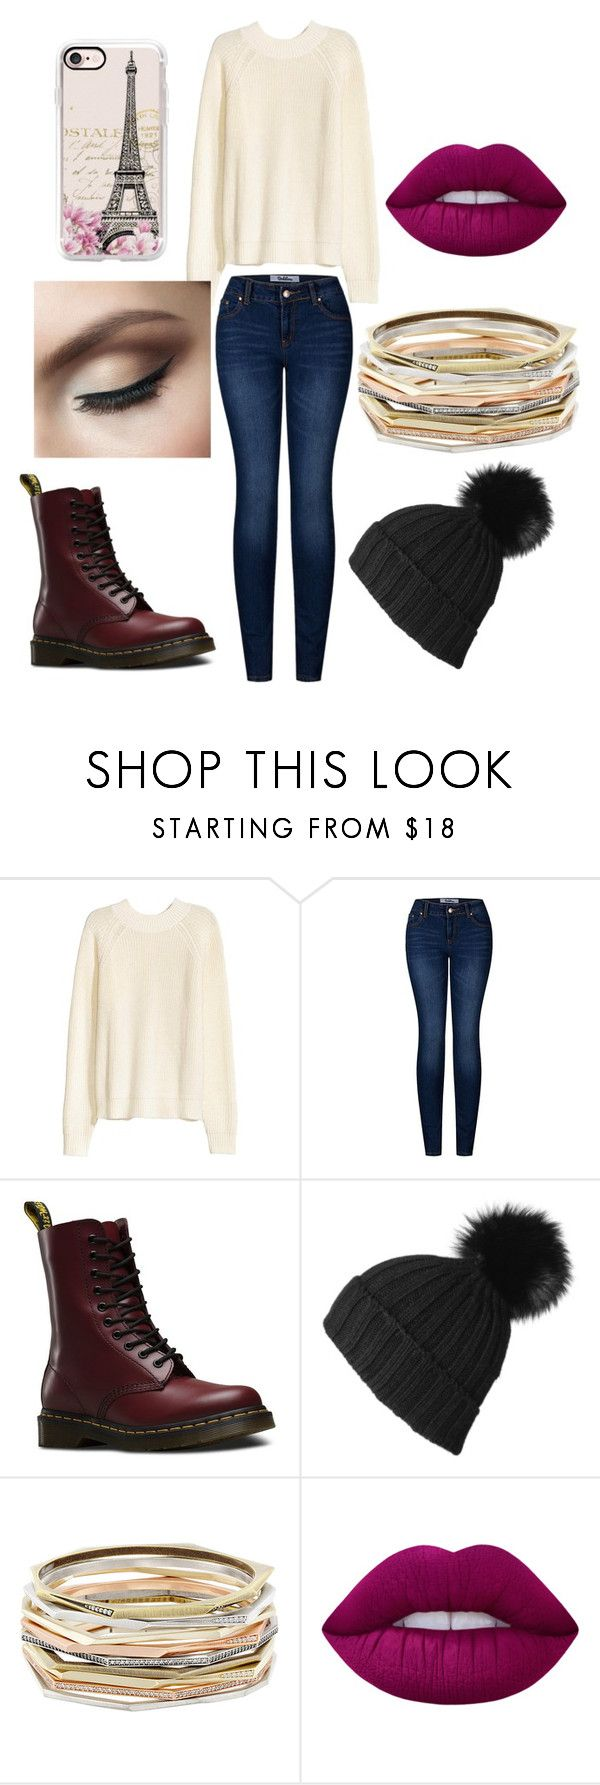 """""""Want to Slay 😍😍"""" by kayla-allaire on Polyvore featuring 2LUV, Dr. Martens, Black, Kendra Scott, Lime Crime and Casetify"""